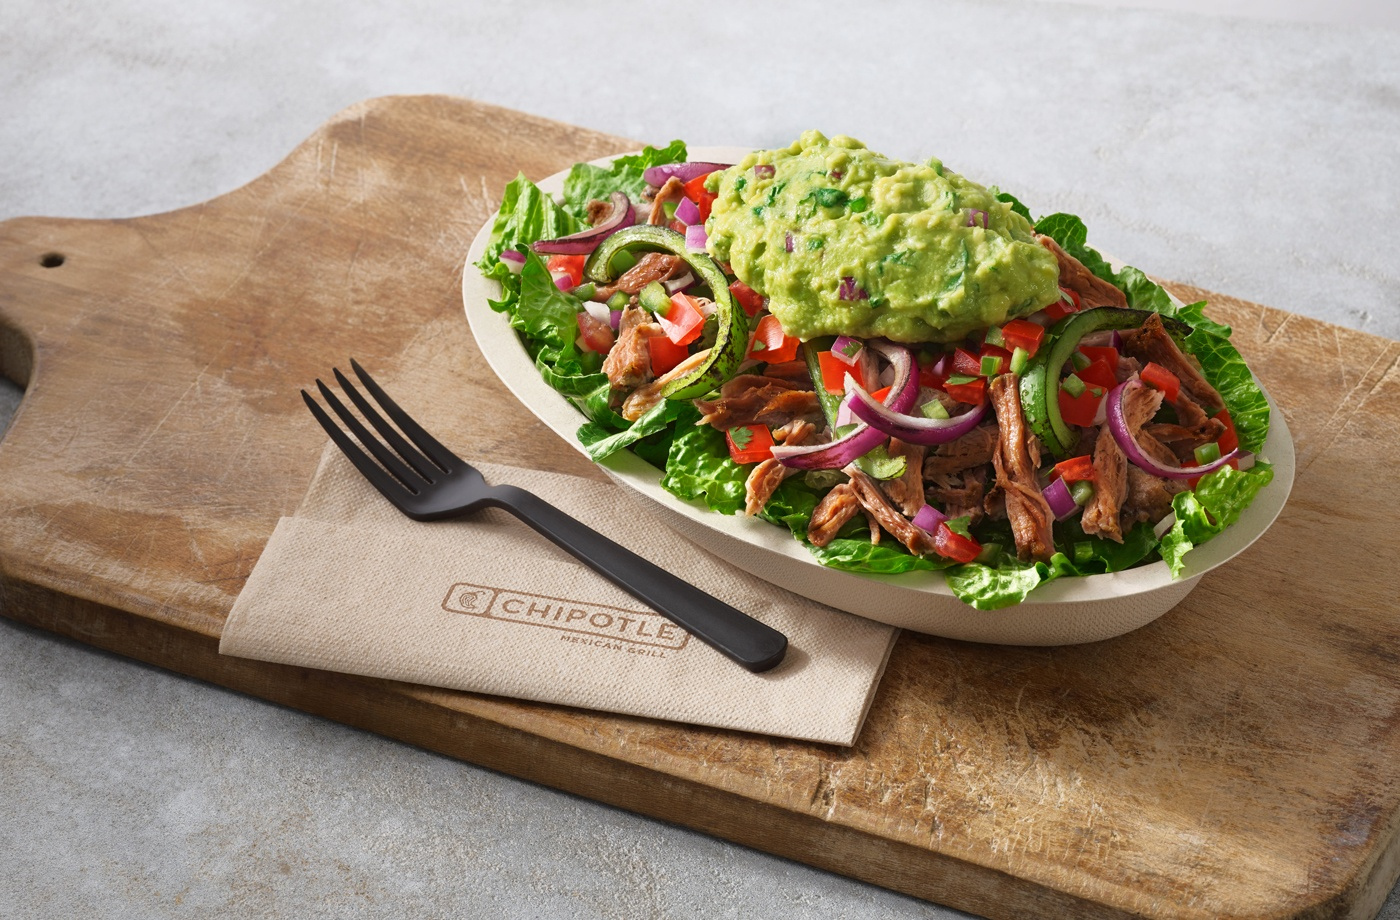 Thumbnail for Holy guacamole: Chipotle just came out with Whole30, keto, and Paleo-approved bowls